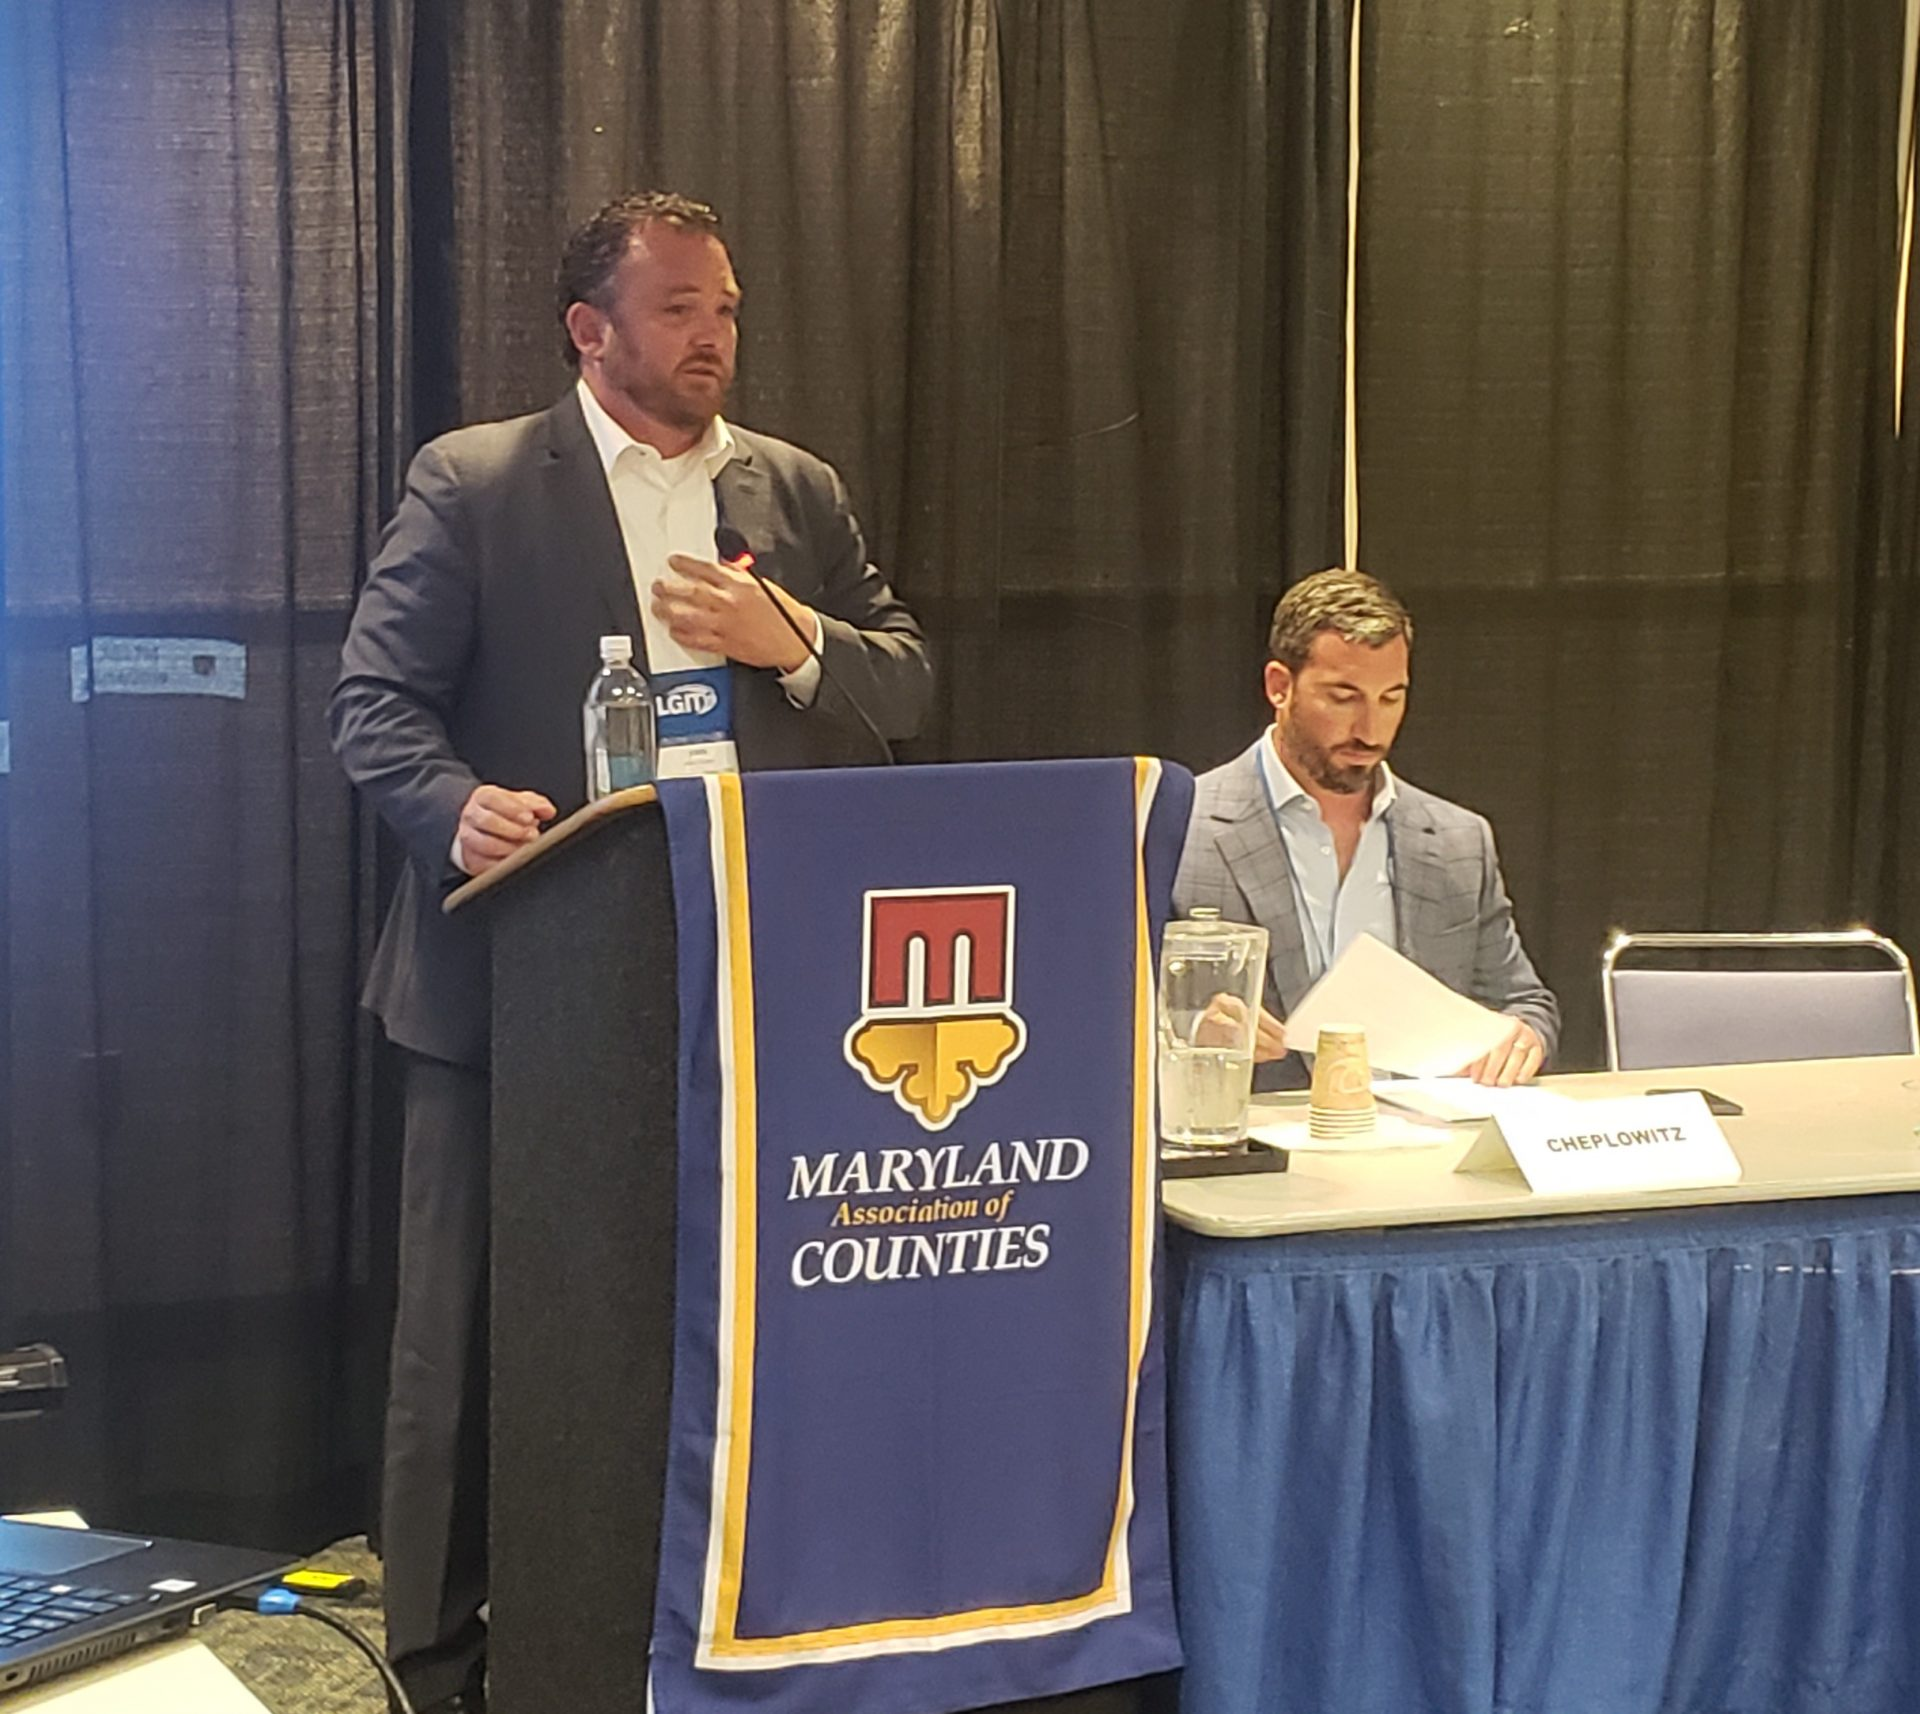 County Officials and Chief Information Security Officer John Evans Connect at Cybersecurity Forum